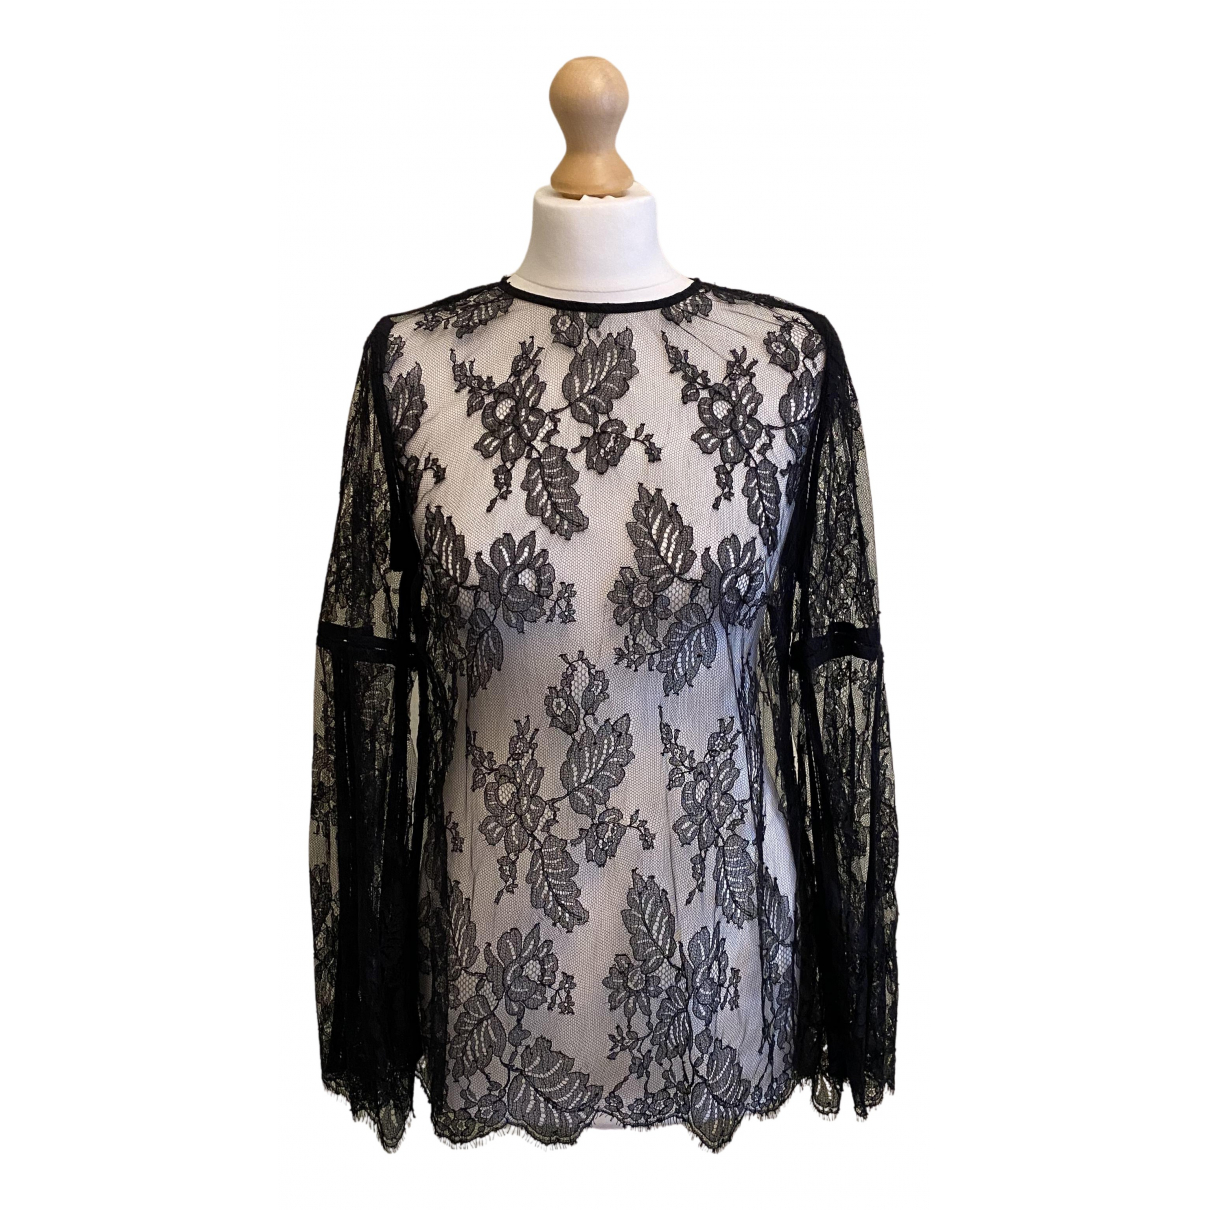 Zimmermann N Black  top for Women 1 US